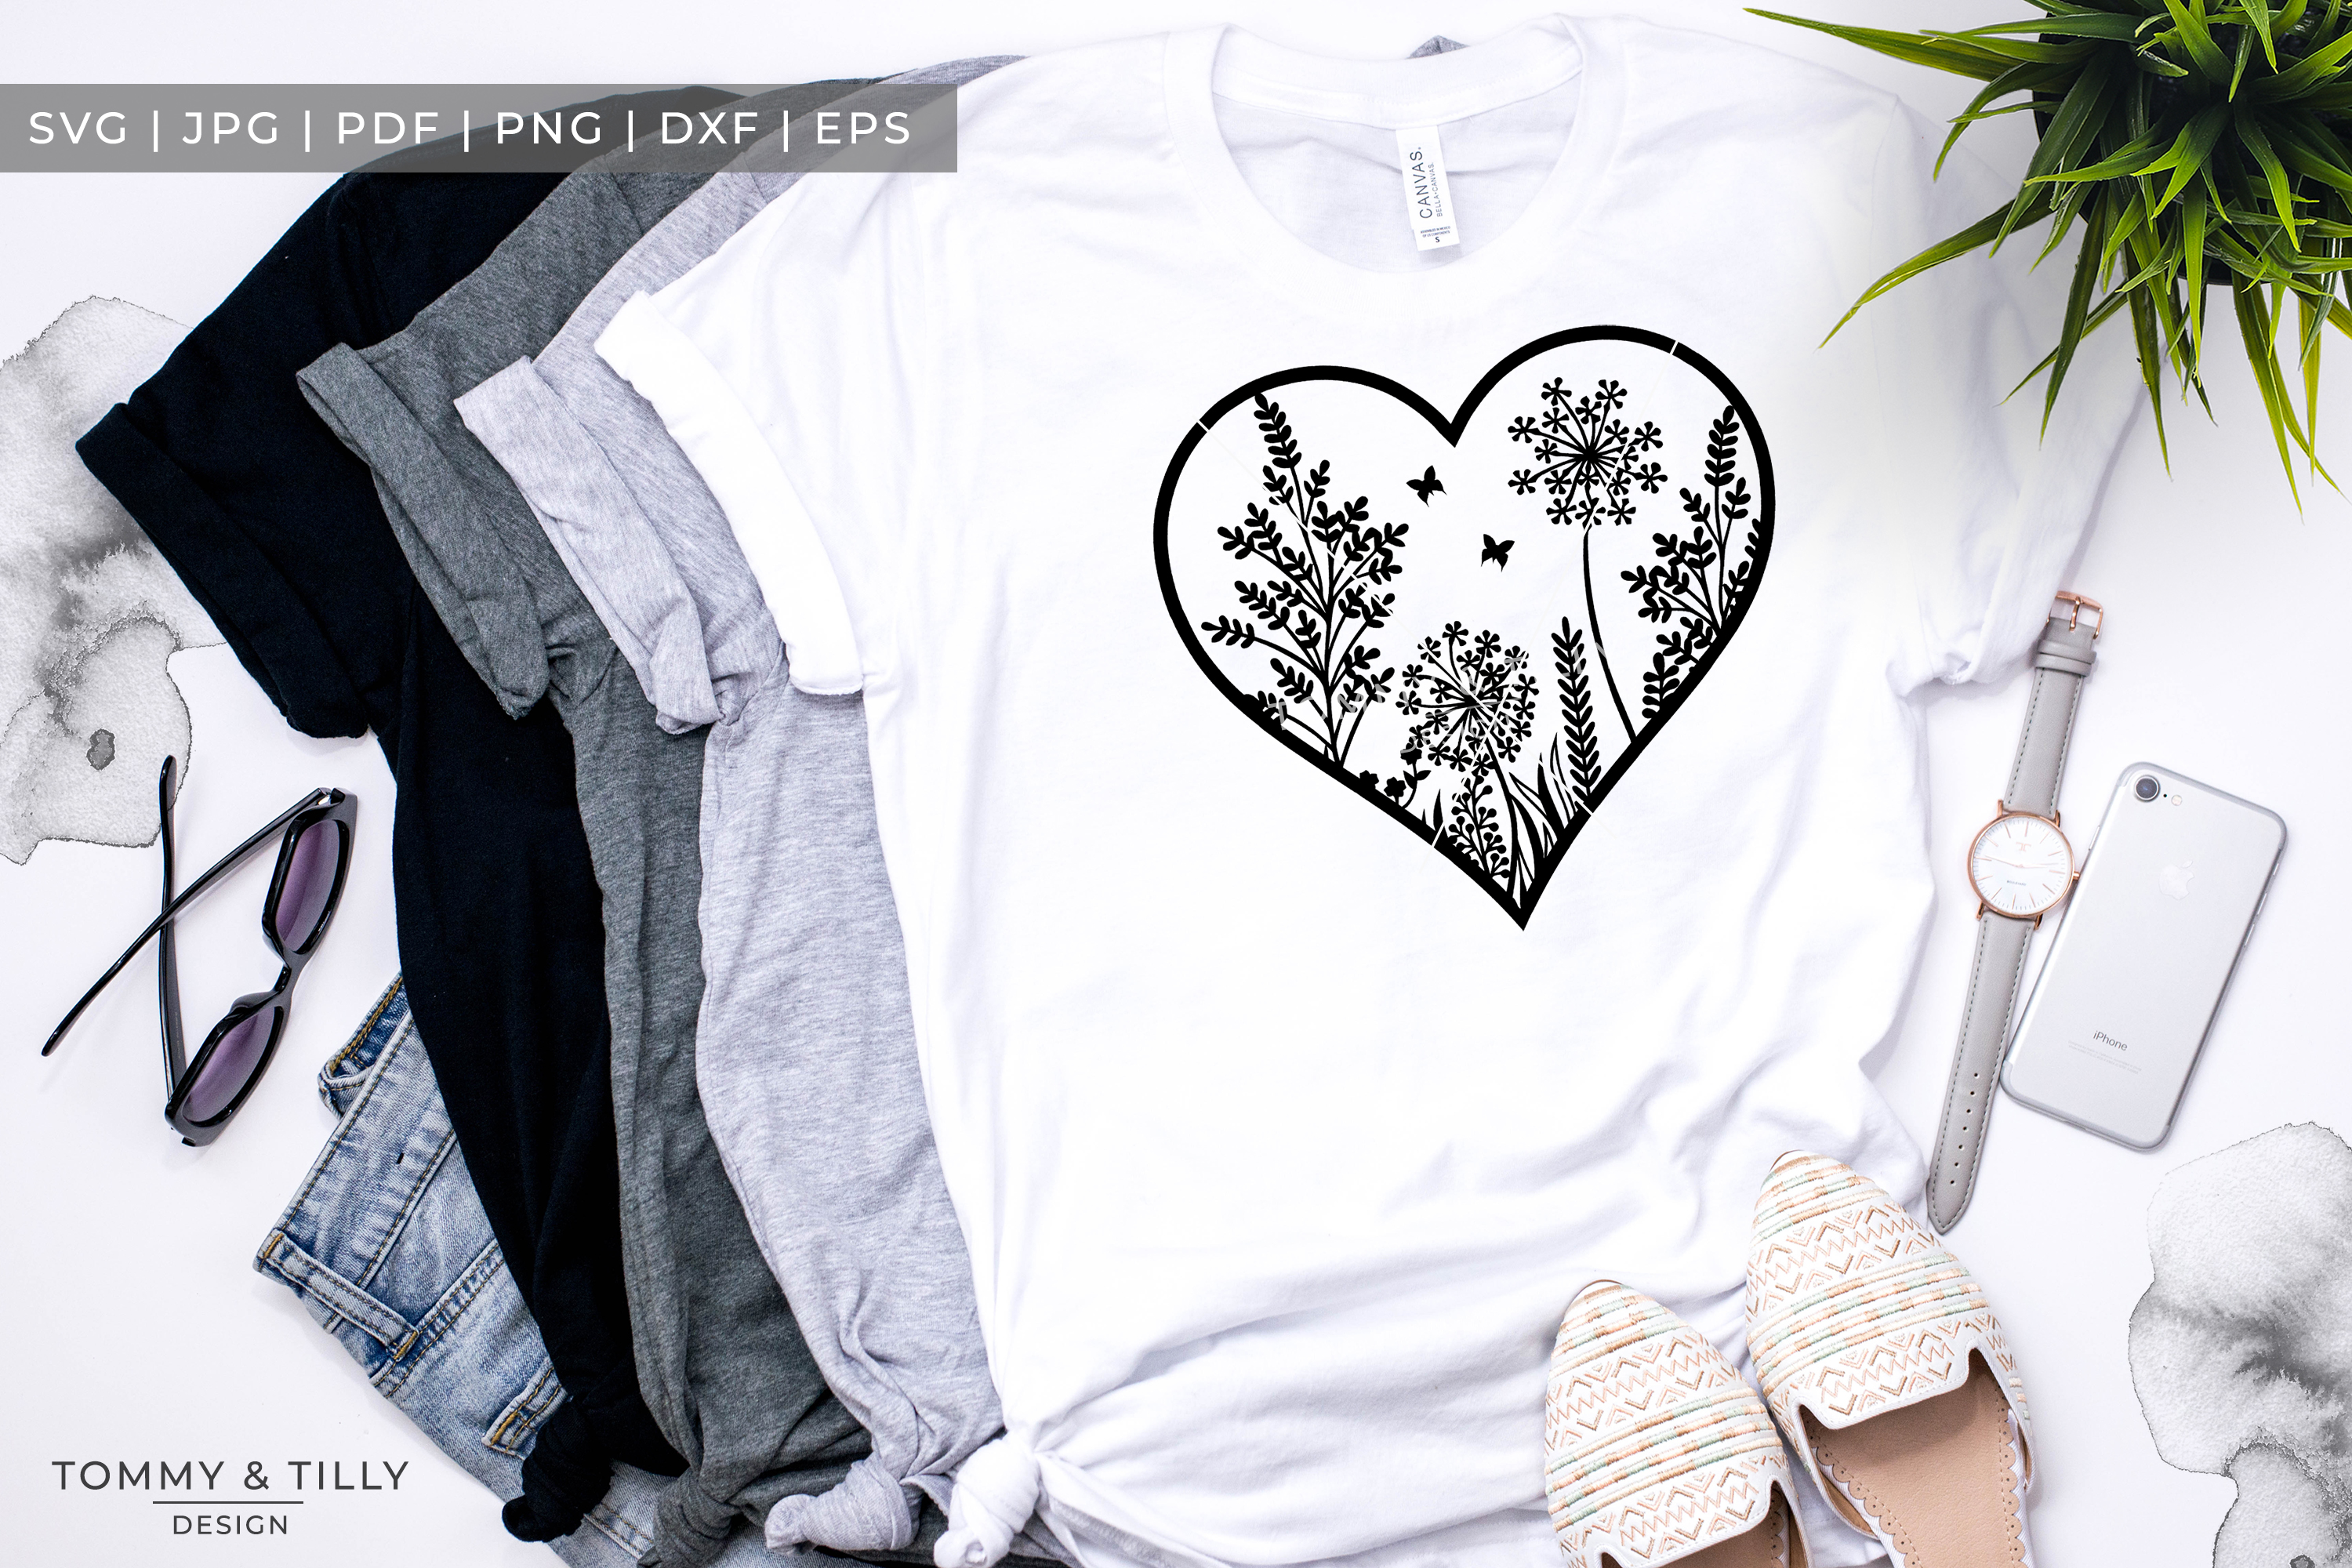 Meadow Heart x 3 - Papercut Template SVG EPS DXF PNG PDF JPG example image 4